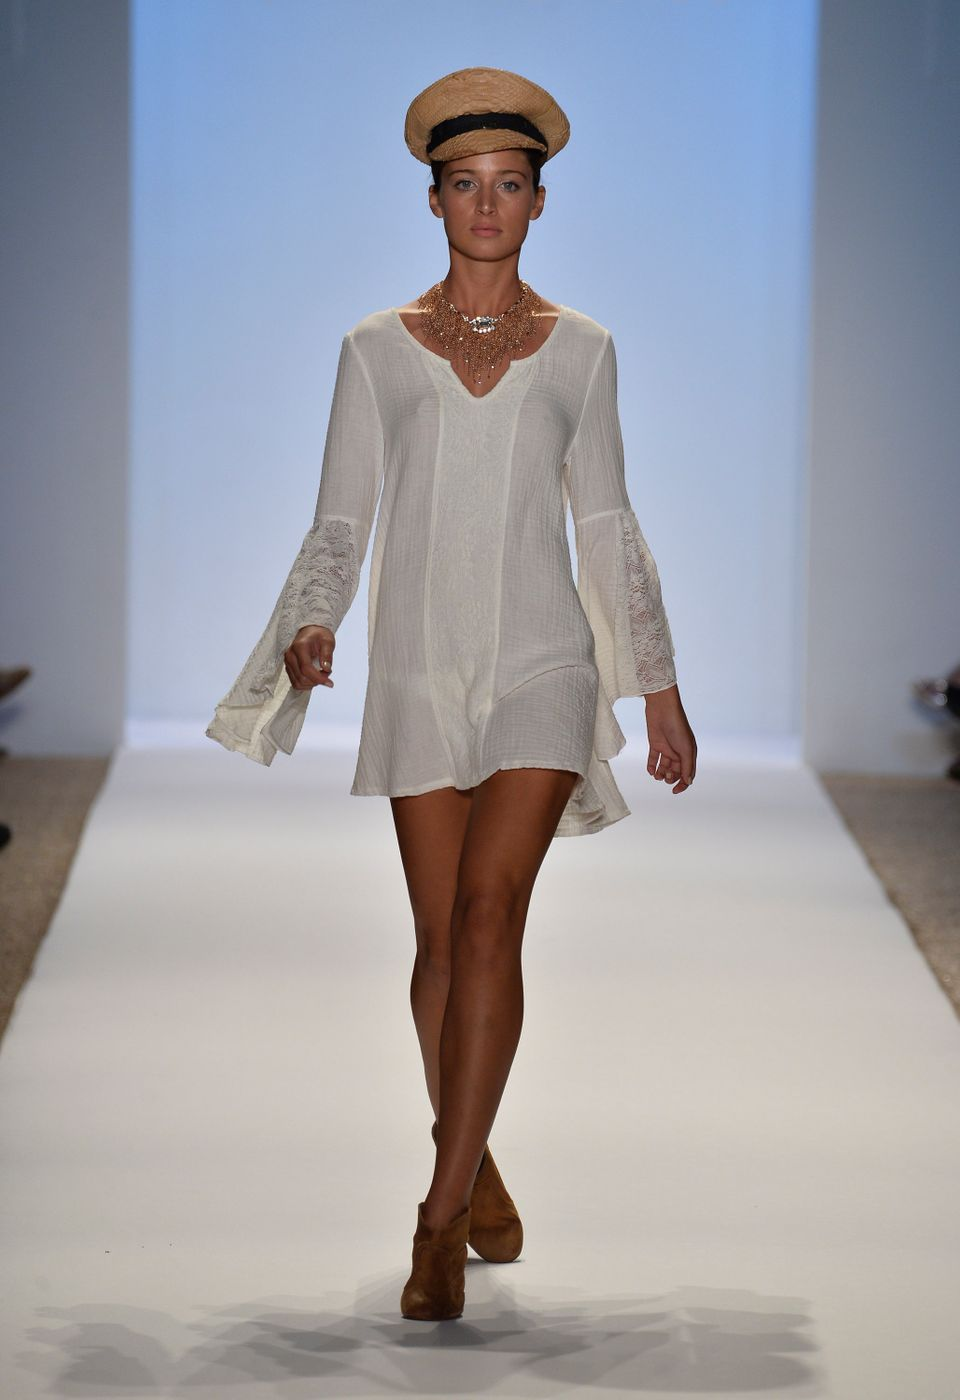 MIAMI, FL - JULY 21:  A model walks the runway at the L*Space By Monica Wise show during Mercedes-Benz Fashion Week Swim 2014